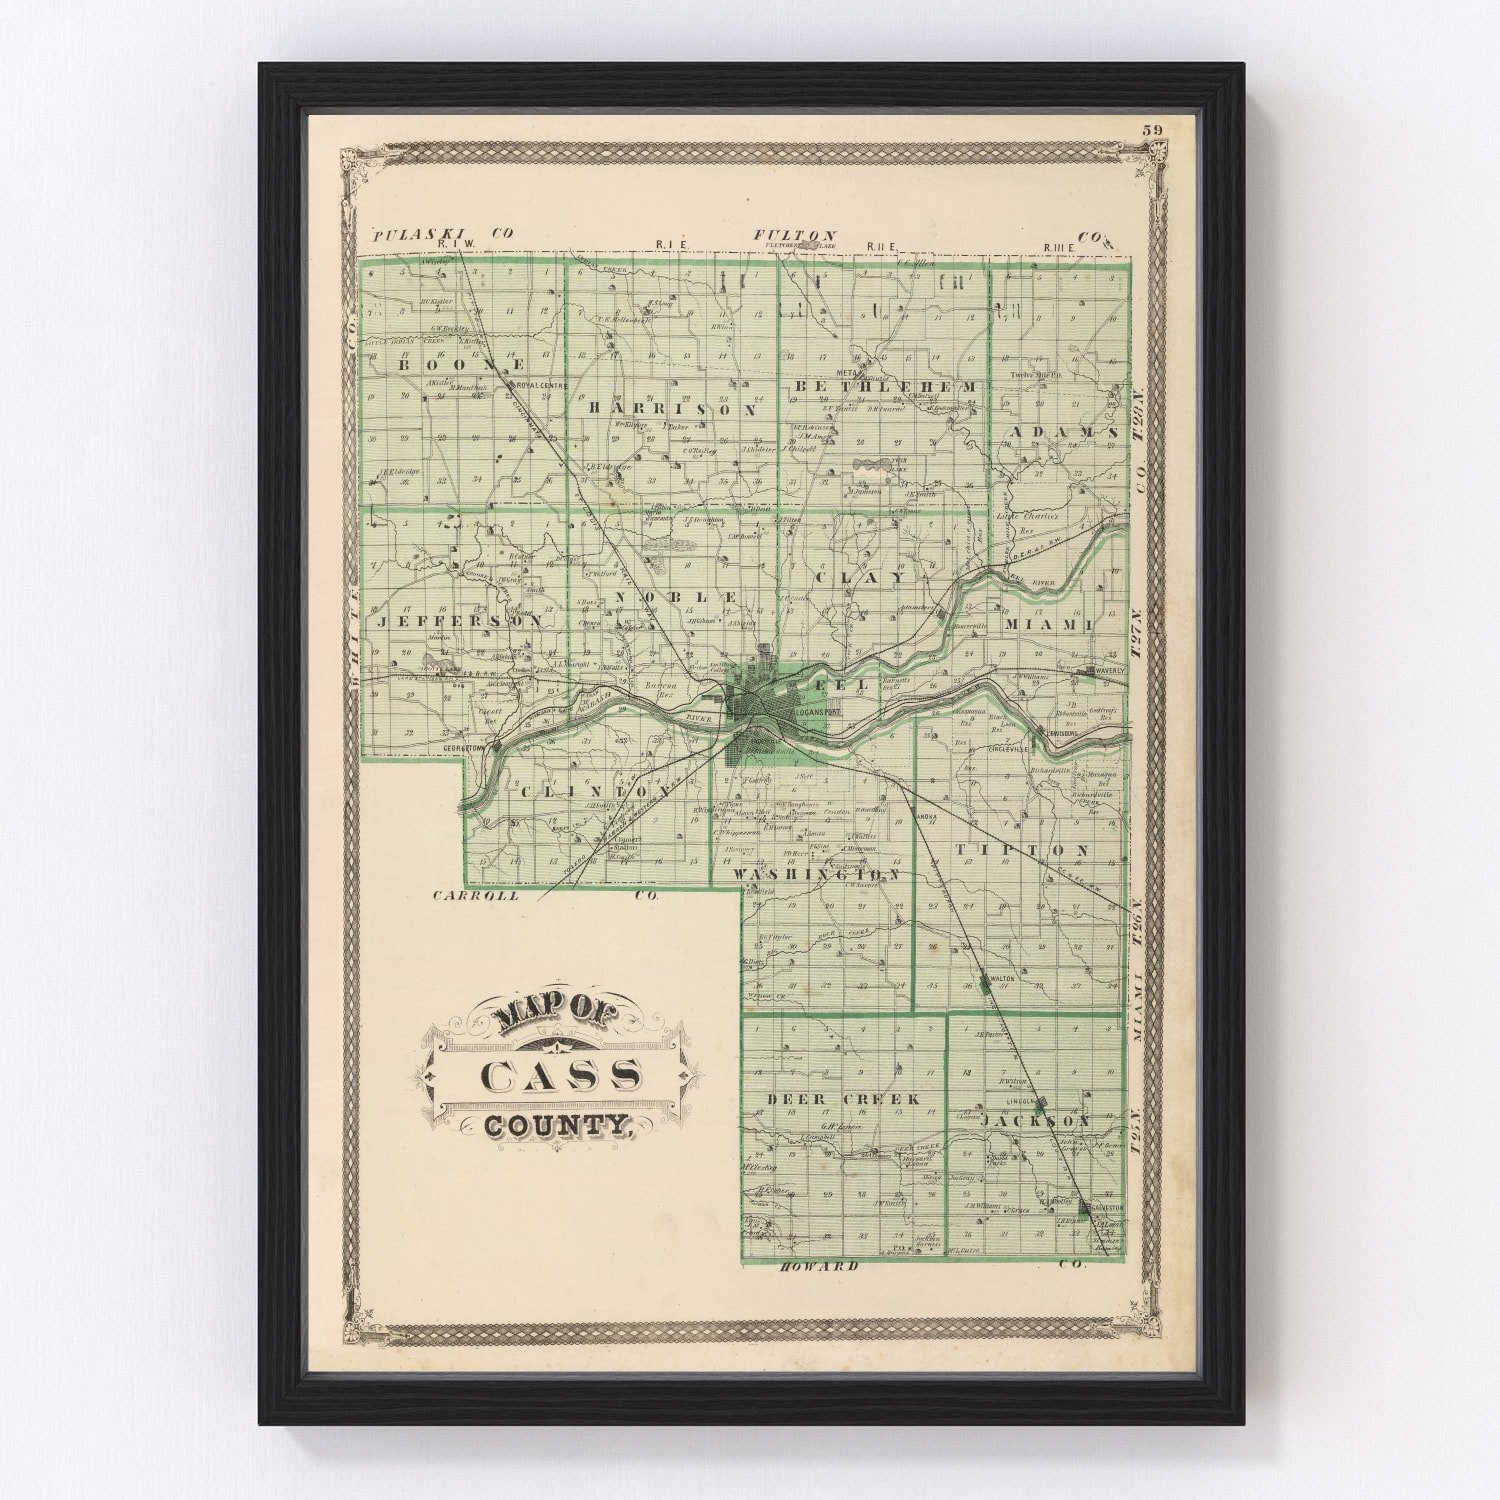 Vintage Map of Cass County Indiana, 1876